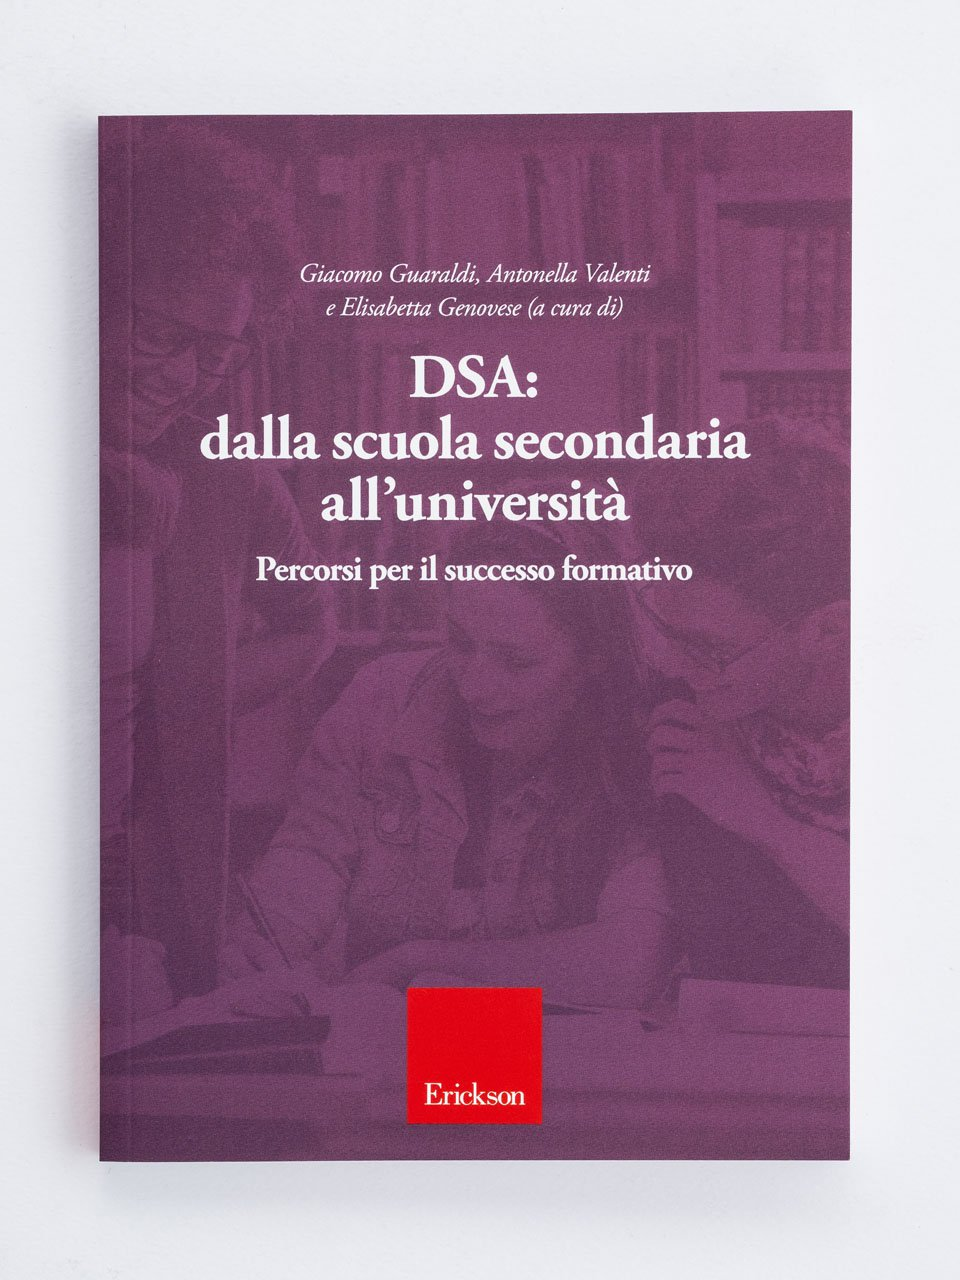 DSA: dalla scuola secondaria all'università - Strategie di lettura metacognitiva - Libri - Erickson